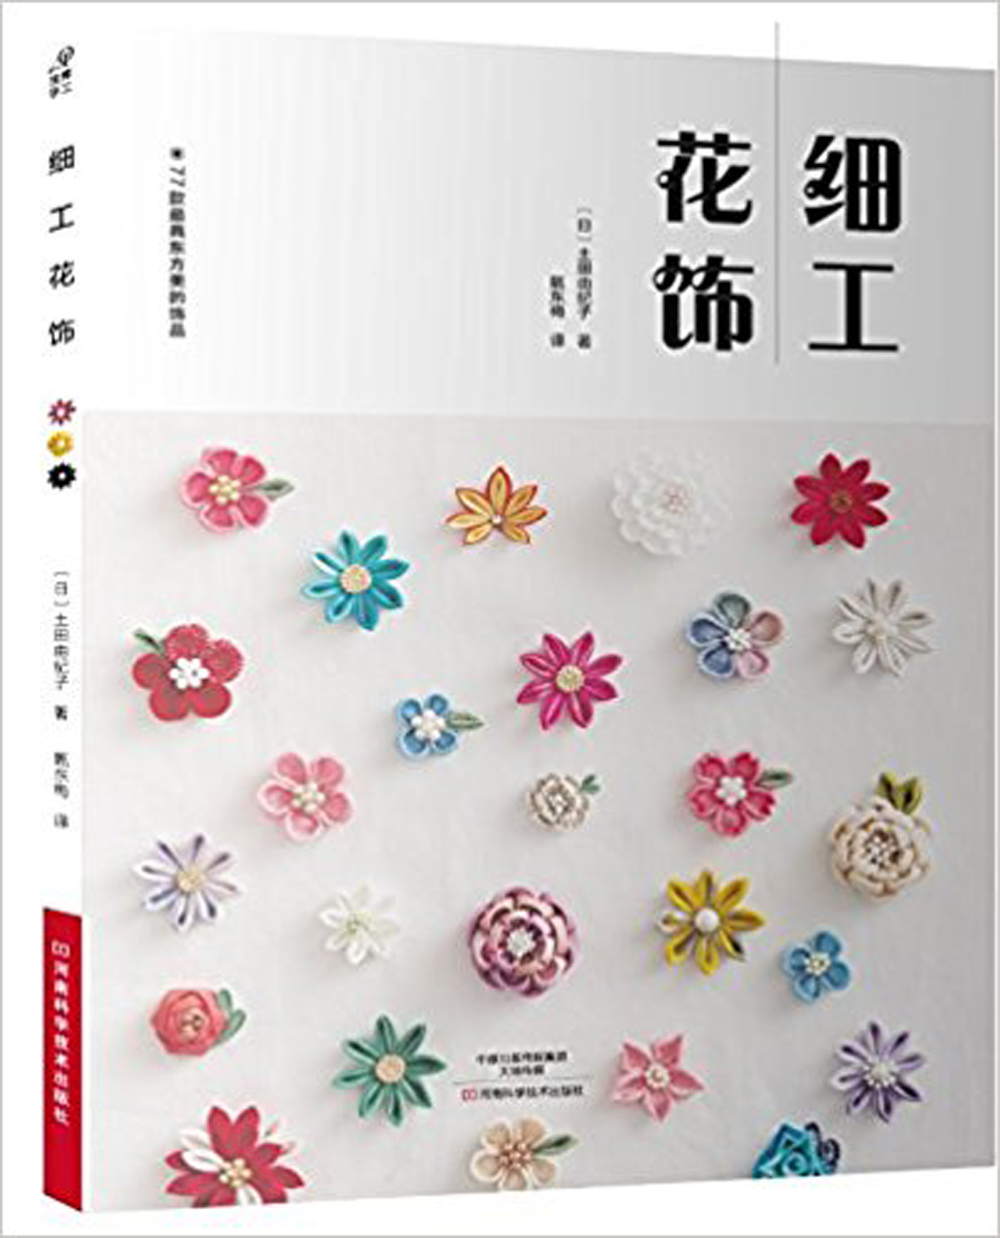 Method Of Making An Ornamental Book Fit For Weekdays Festivals/ Chinese Handmade Carft Book